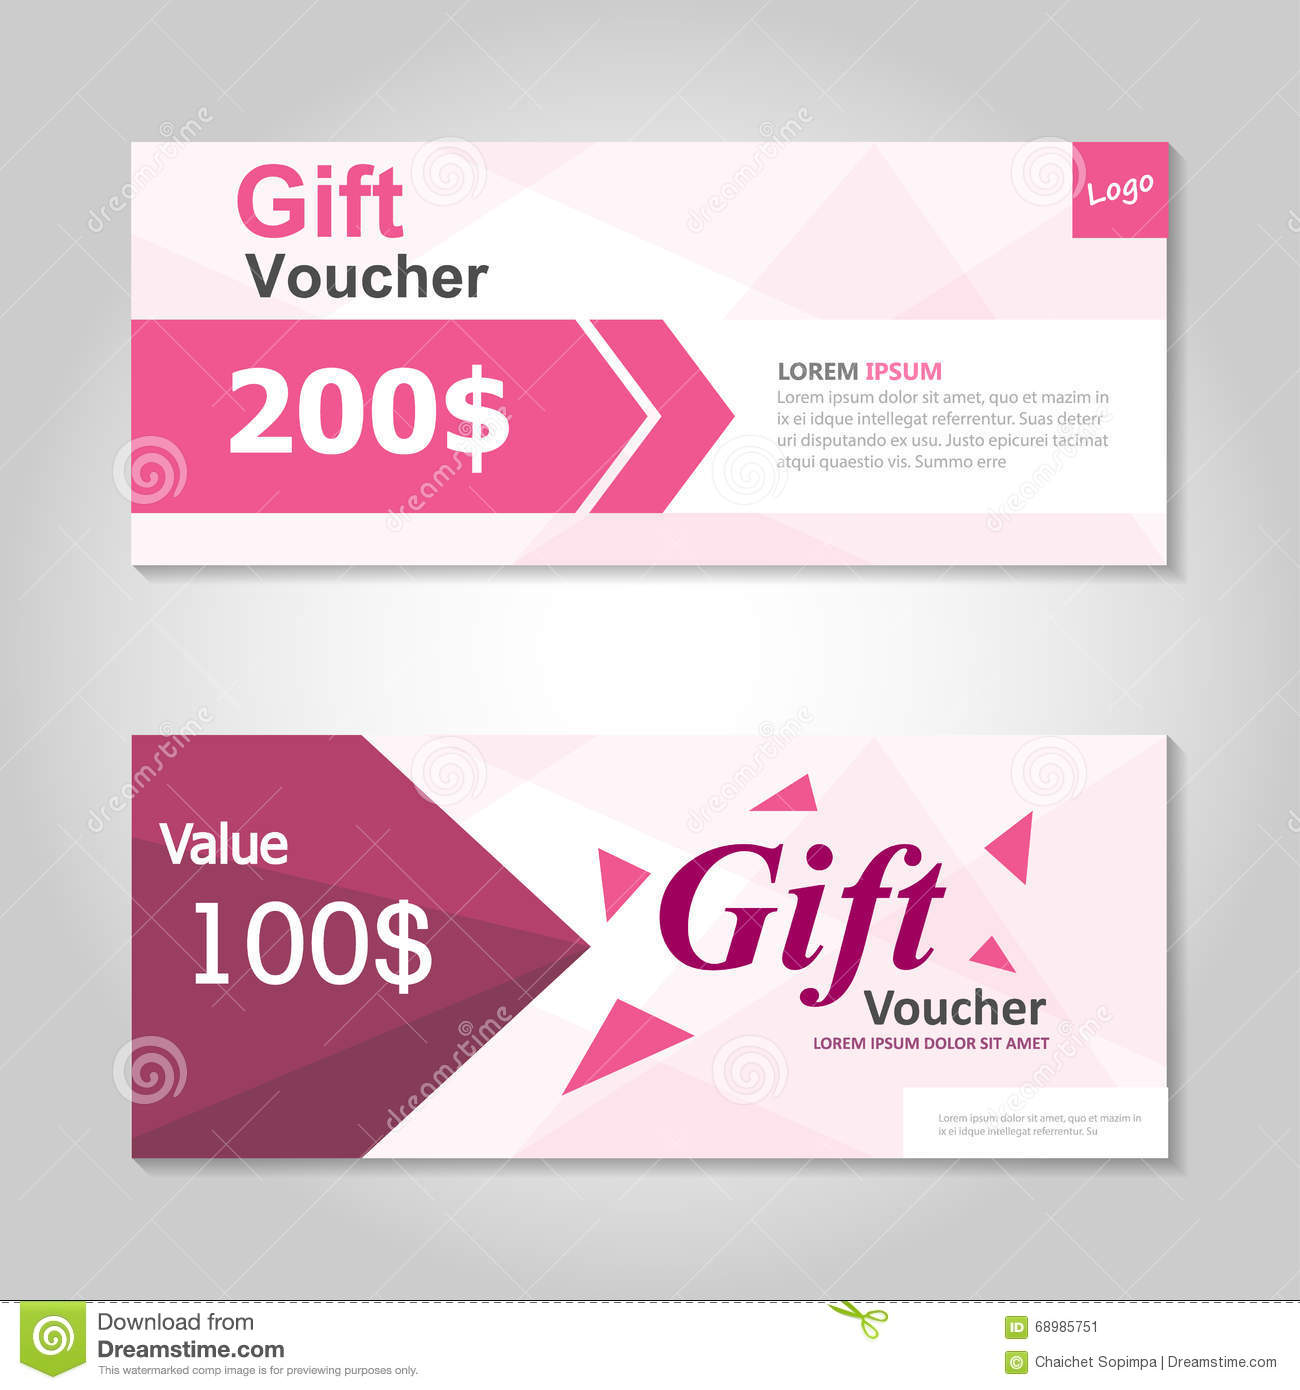 Discount coupons for shopping